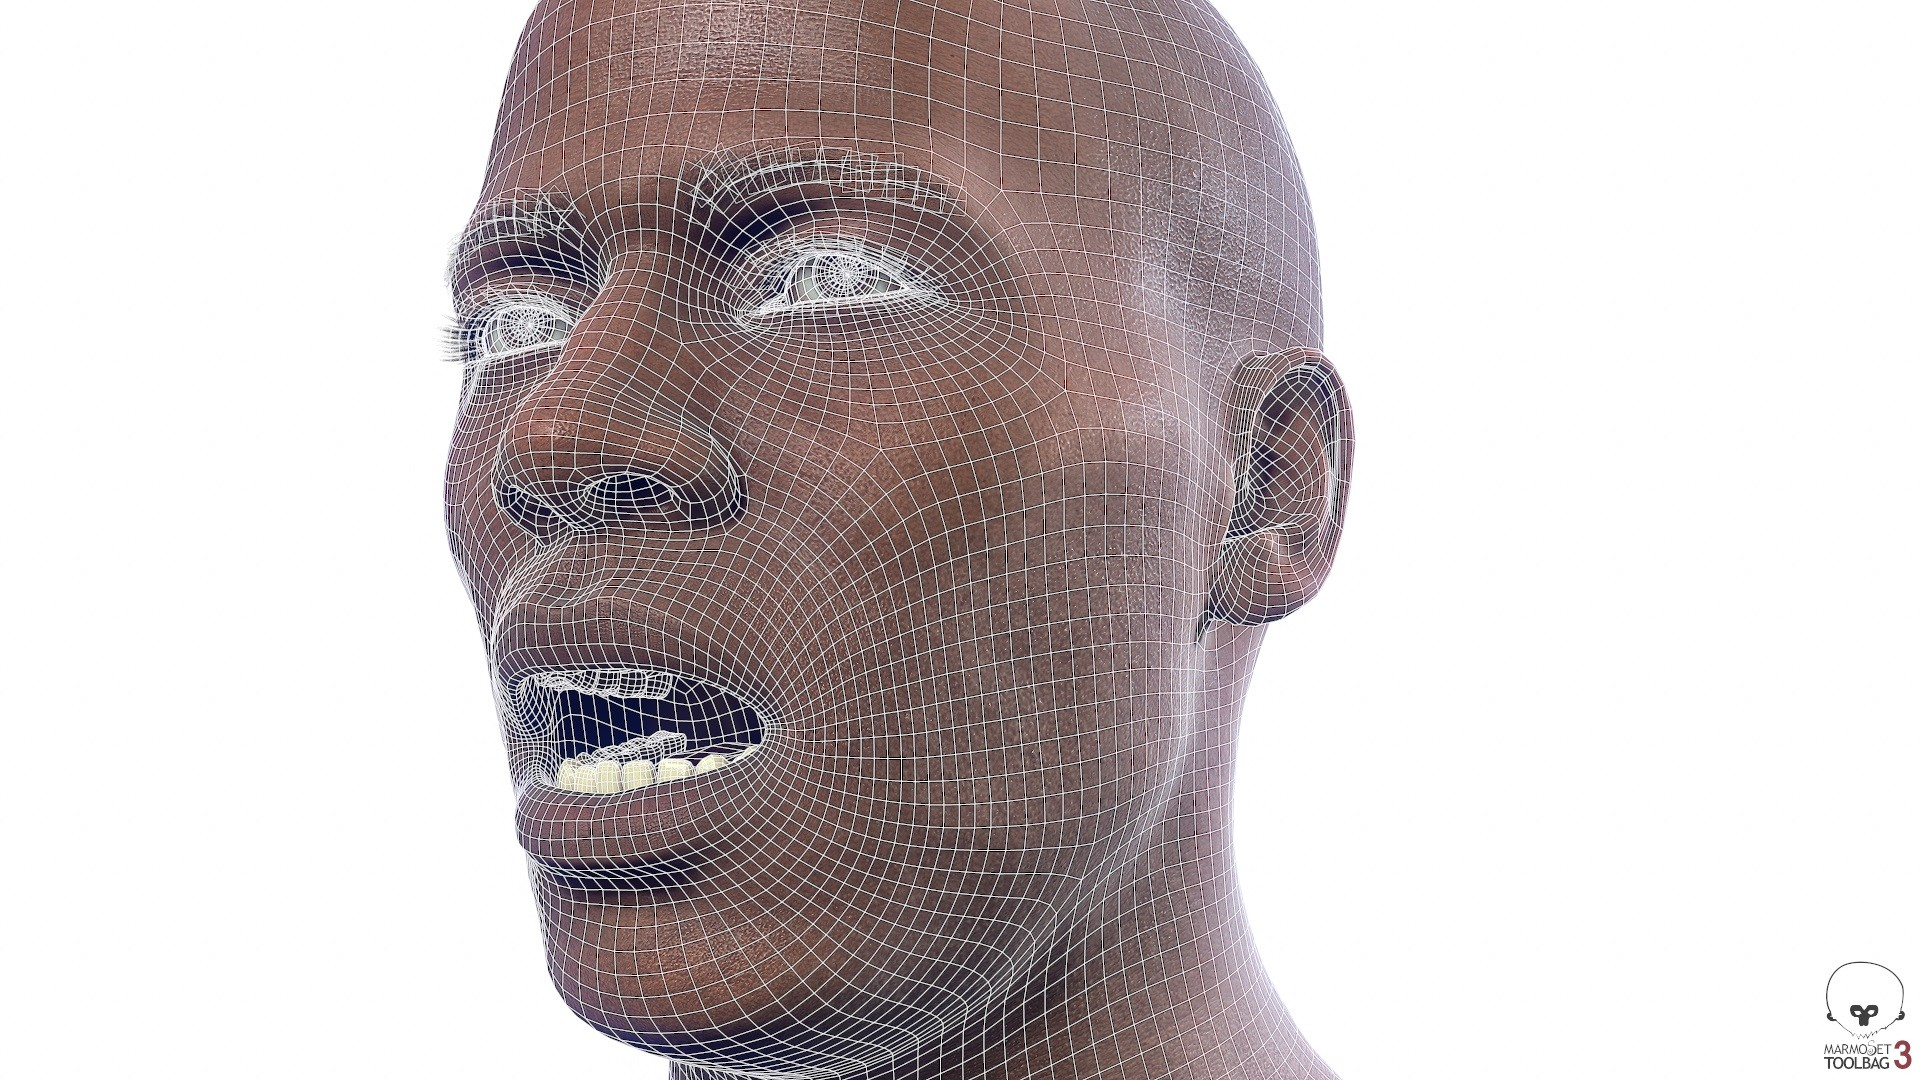 Alex lashko averageblackmale by alexlashko wireframe 03